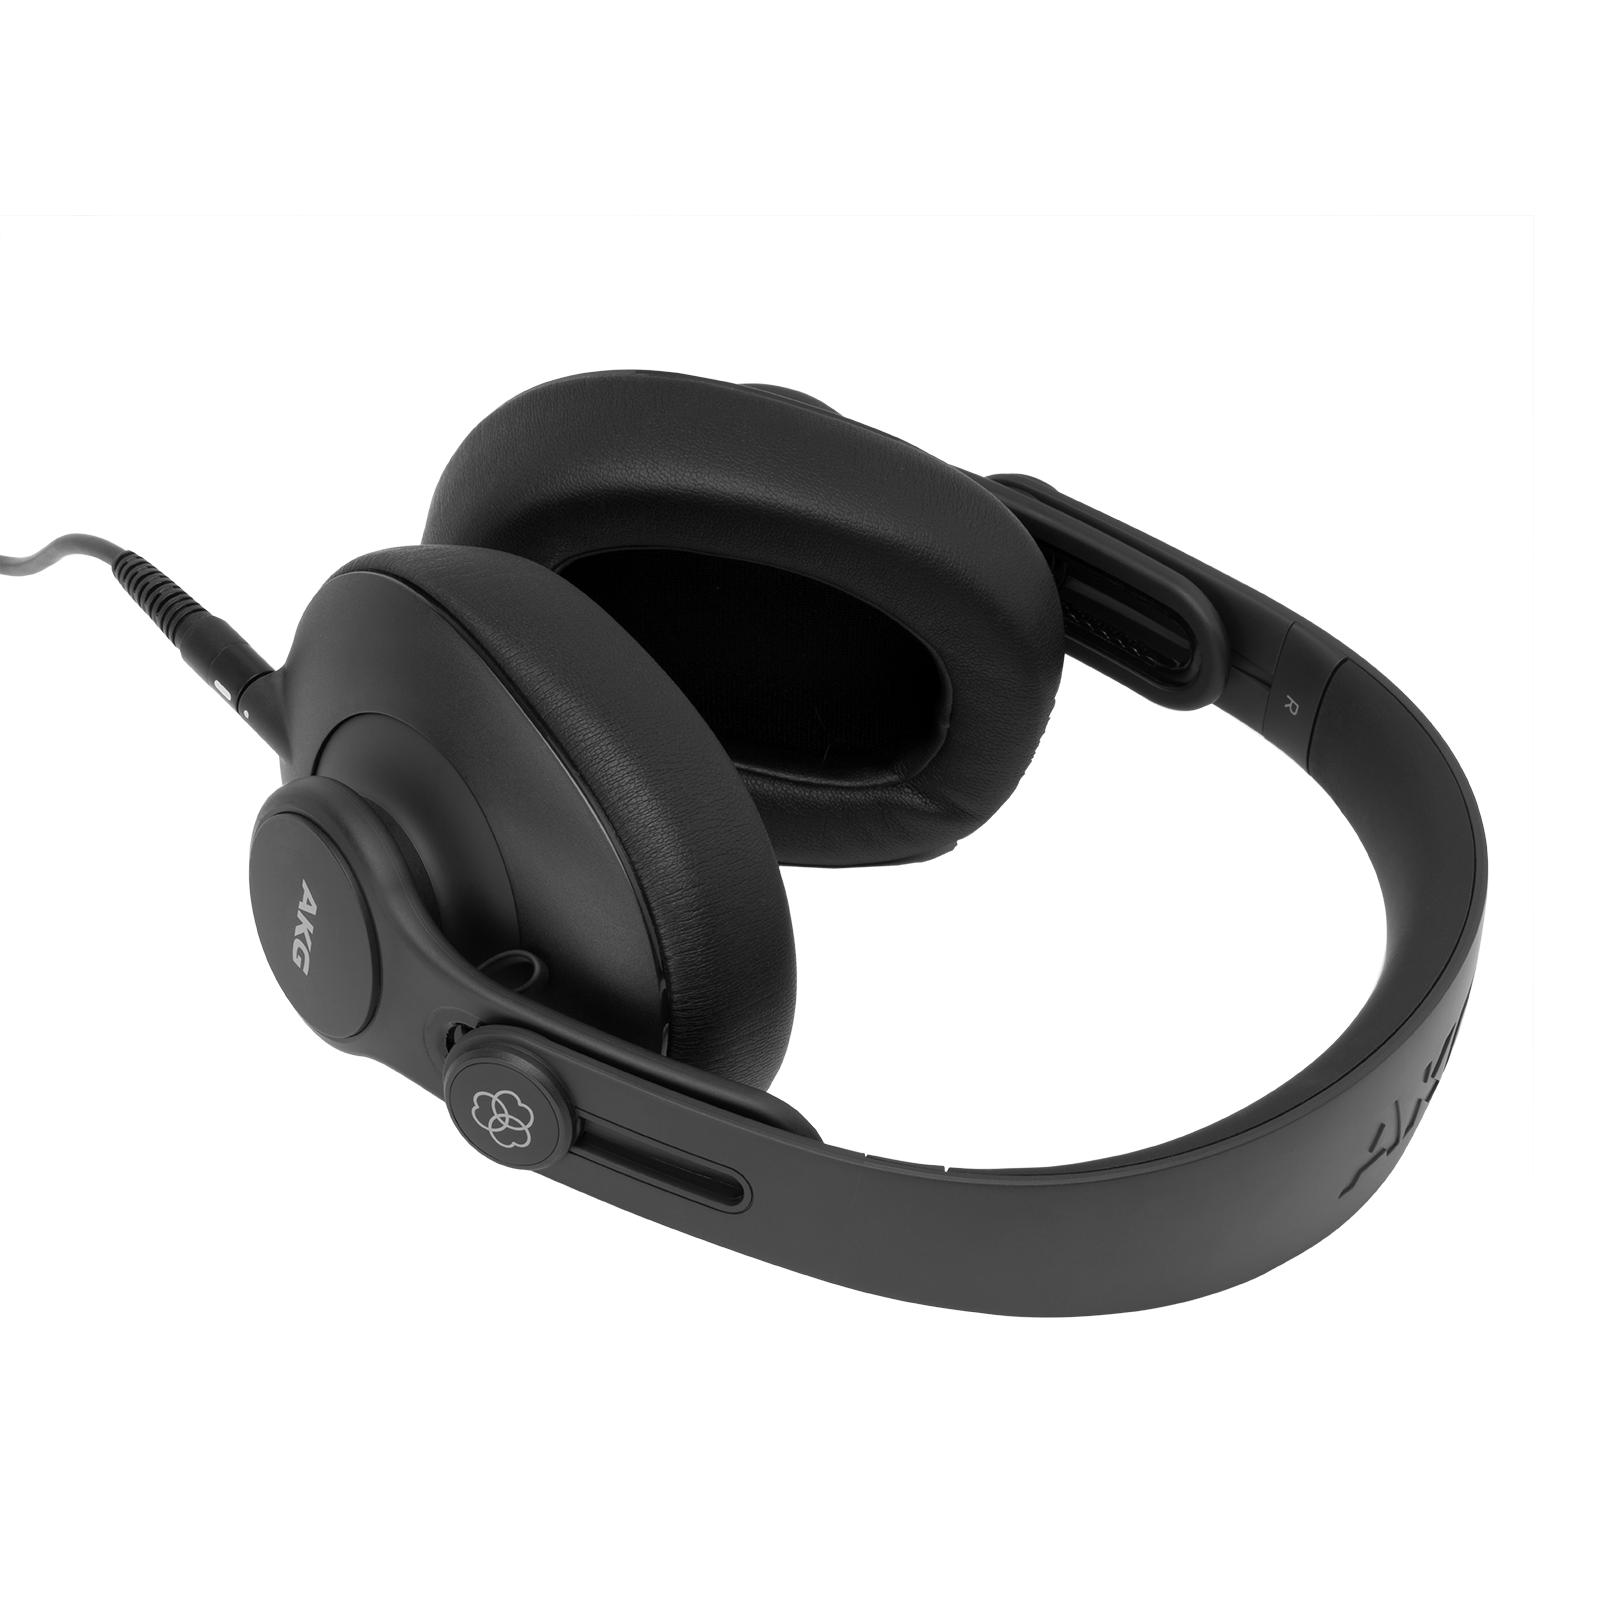 K361 - Black - Over-ear, closed-back, foldable studio headphones - Detailshot 3